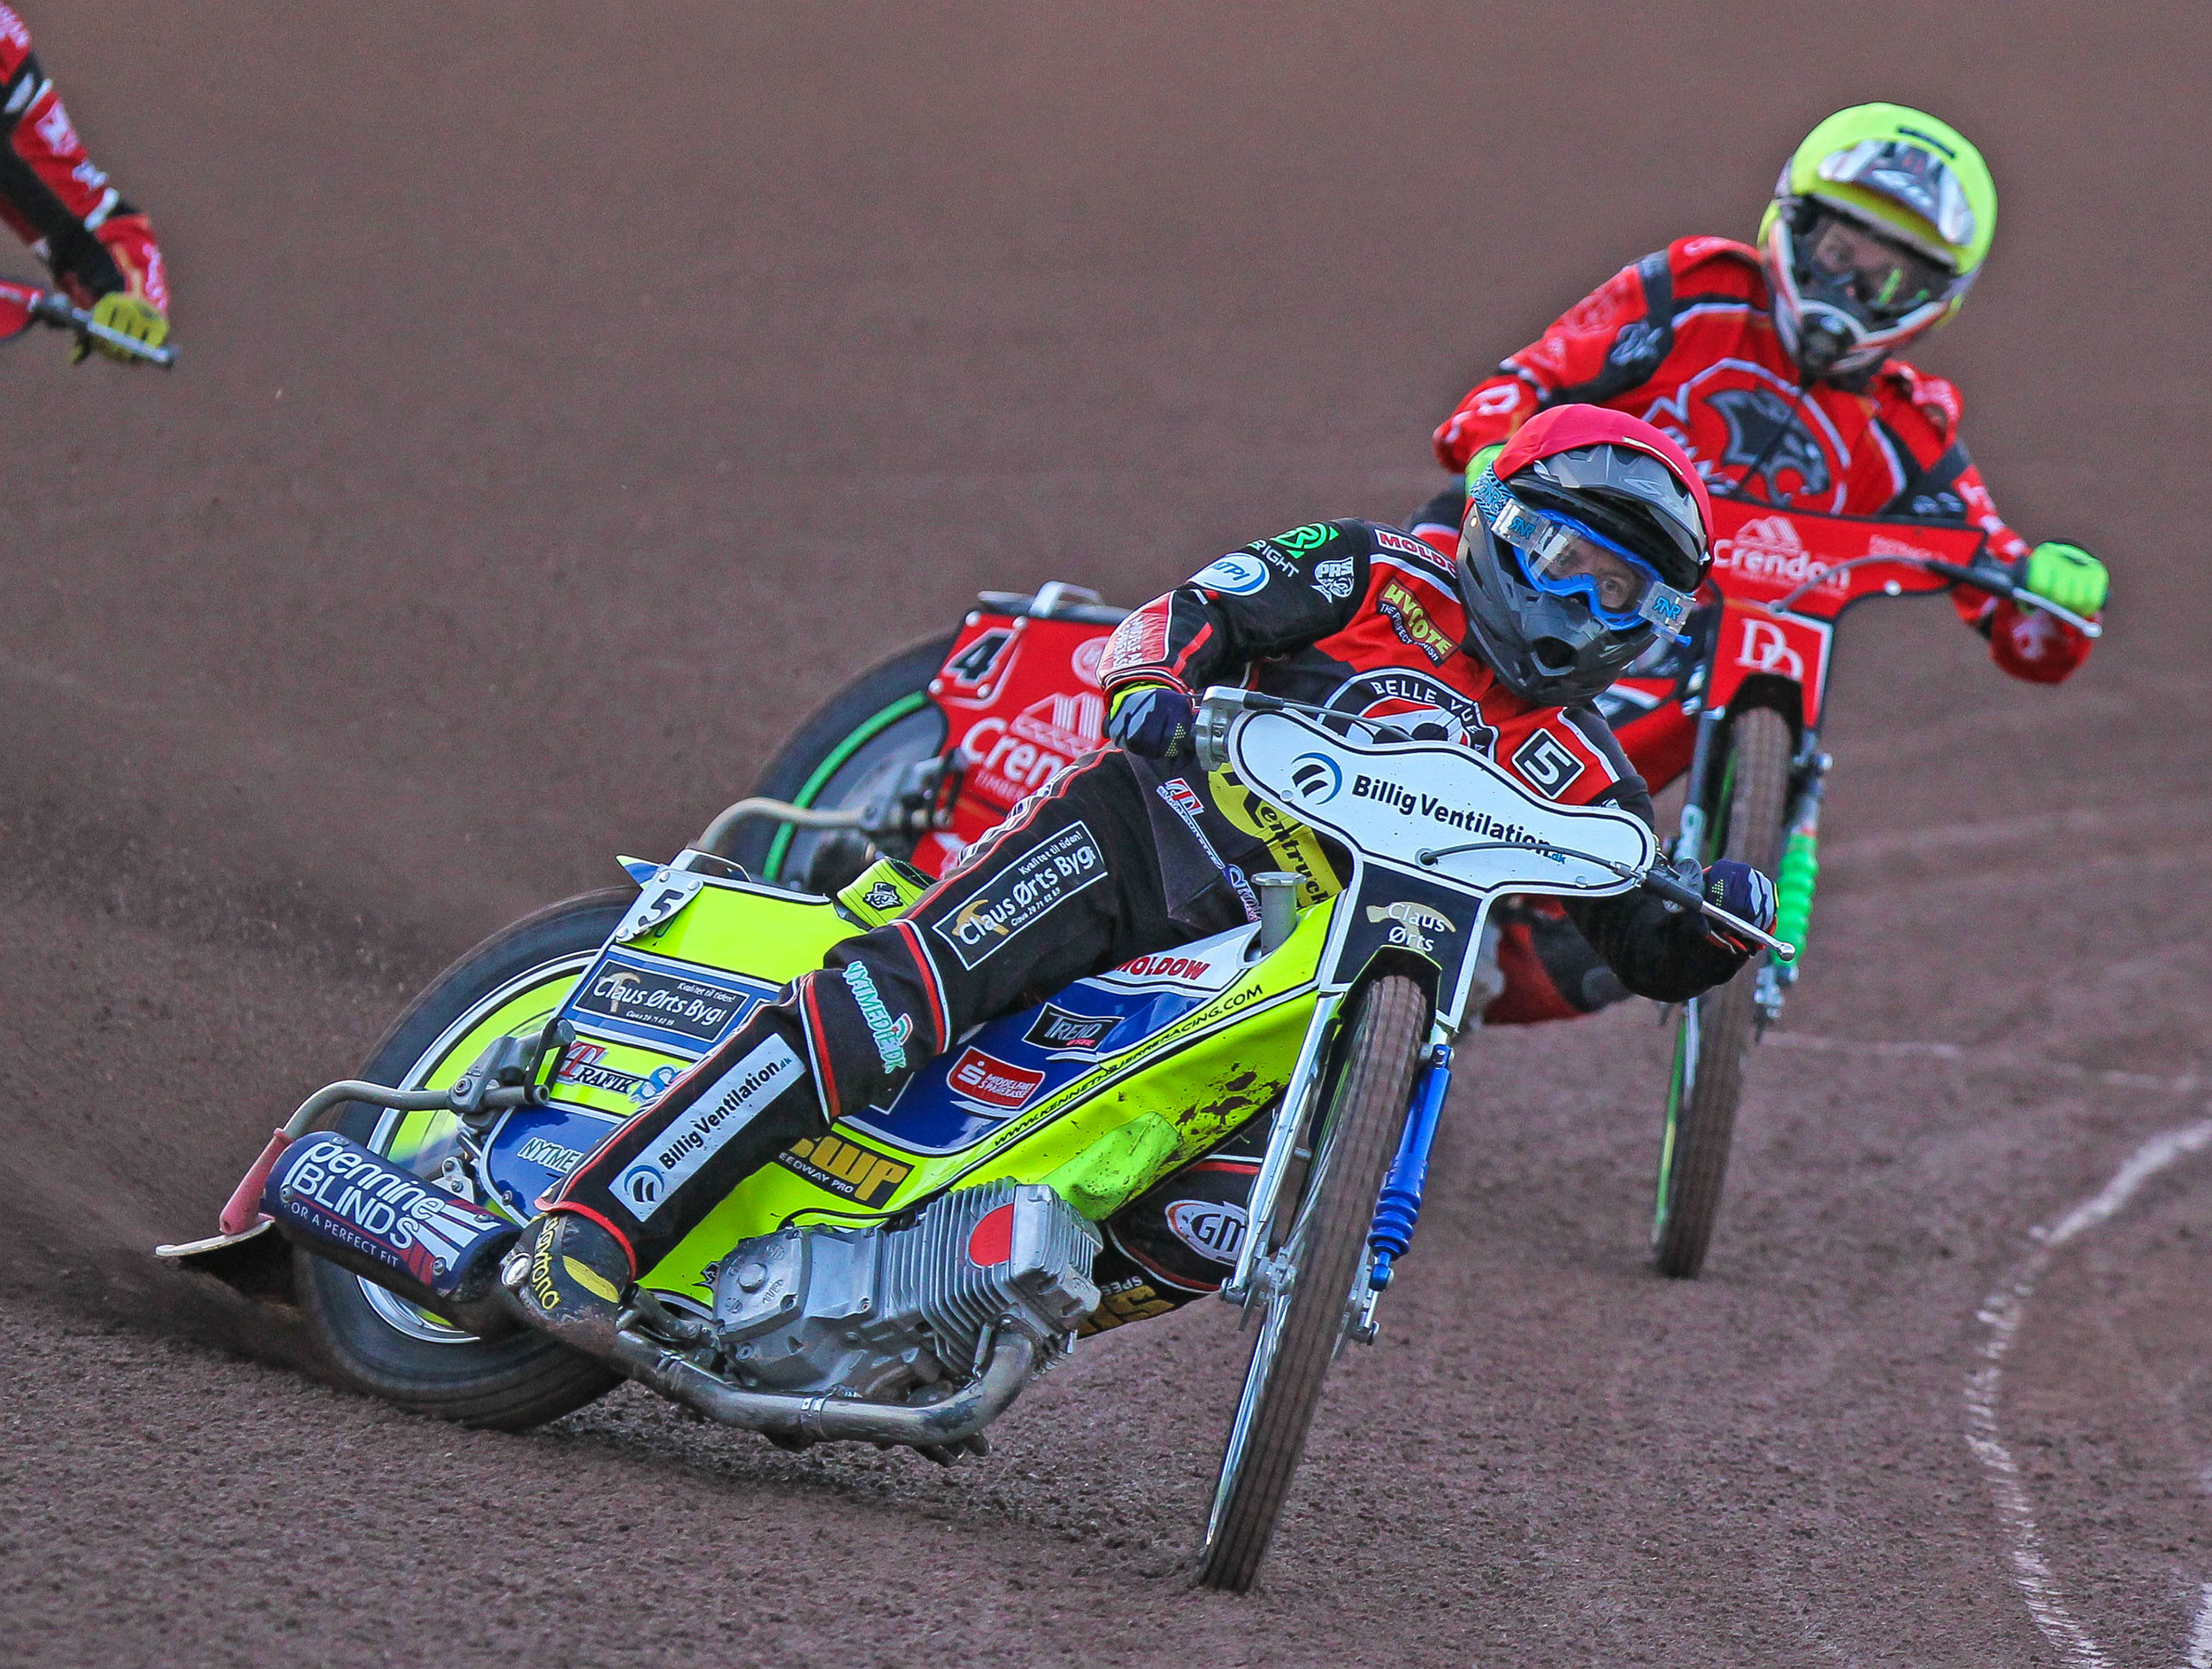 Kenneth Bjerre was in stunning form for the Rentruck Aces, scoring 16 points from six rides.